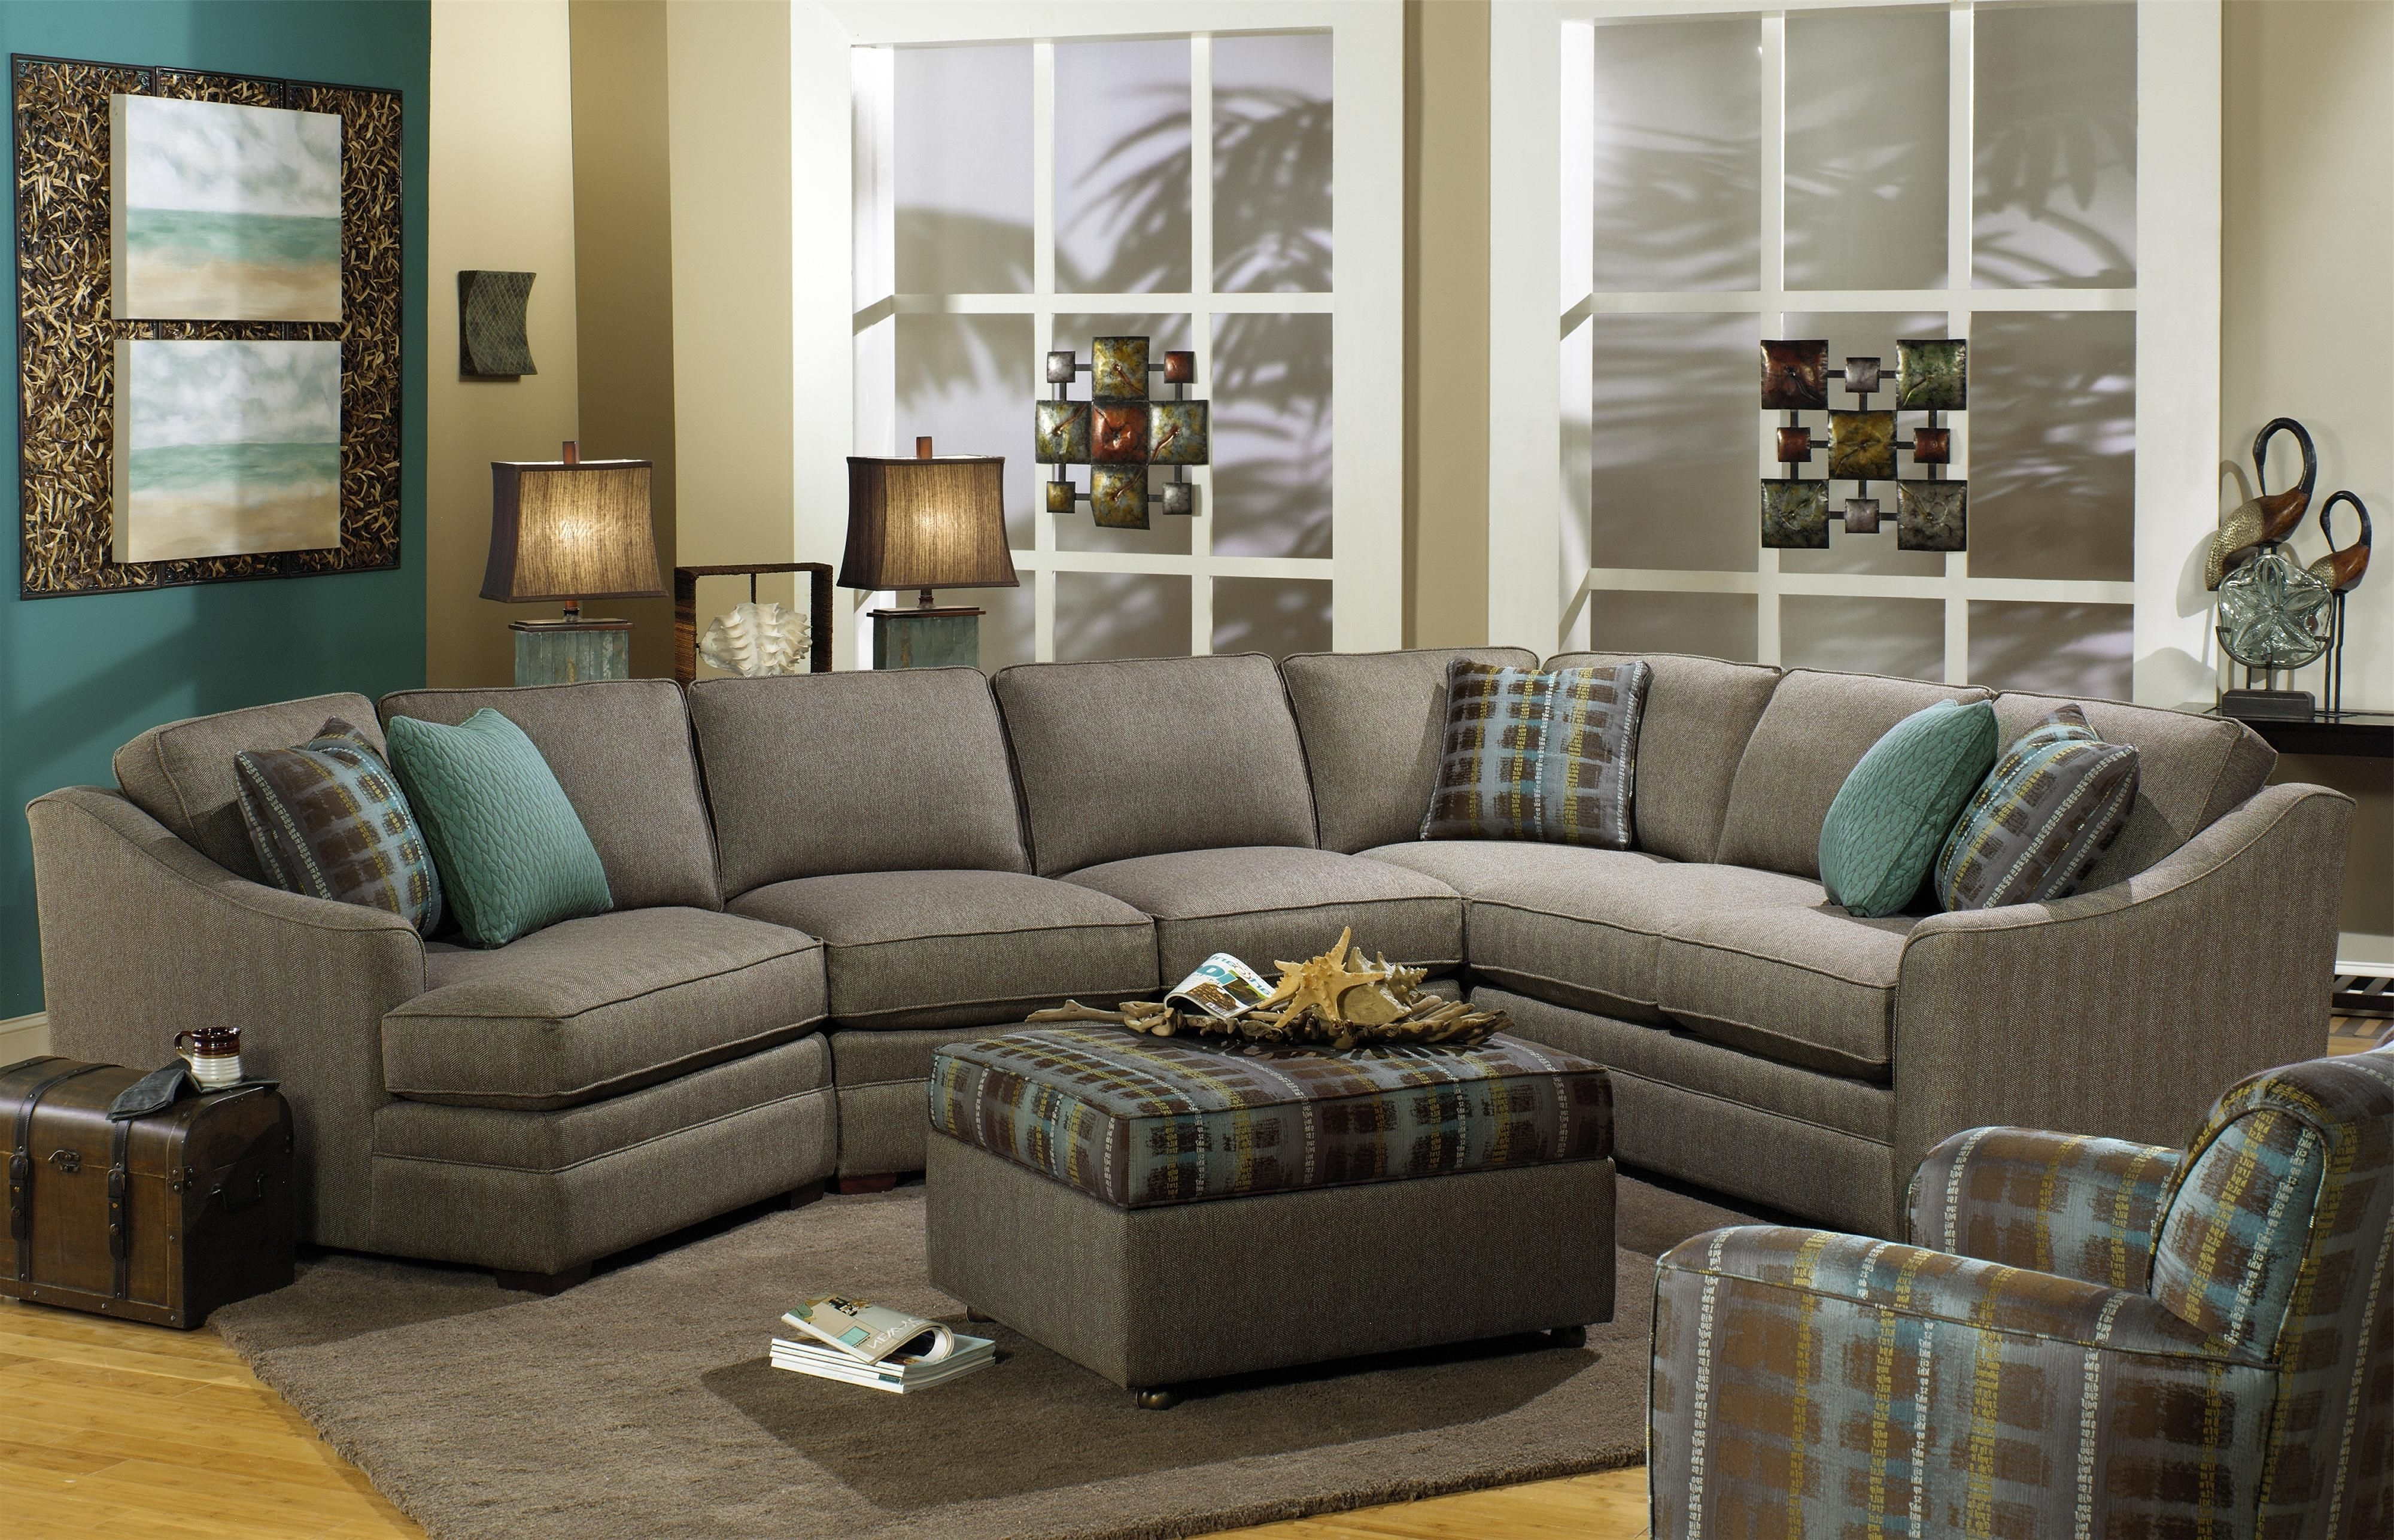 F9 Custom Collection Customizable 3 Piece Sectional With Laf For Well Known Customizable Sectional Sofas (View 8 of 20)